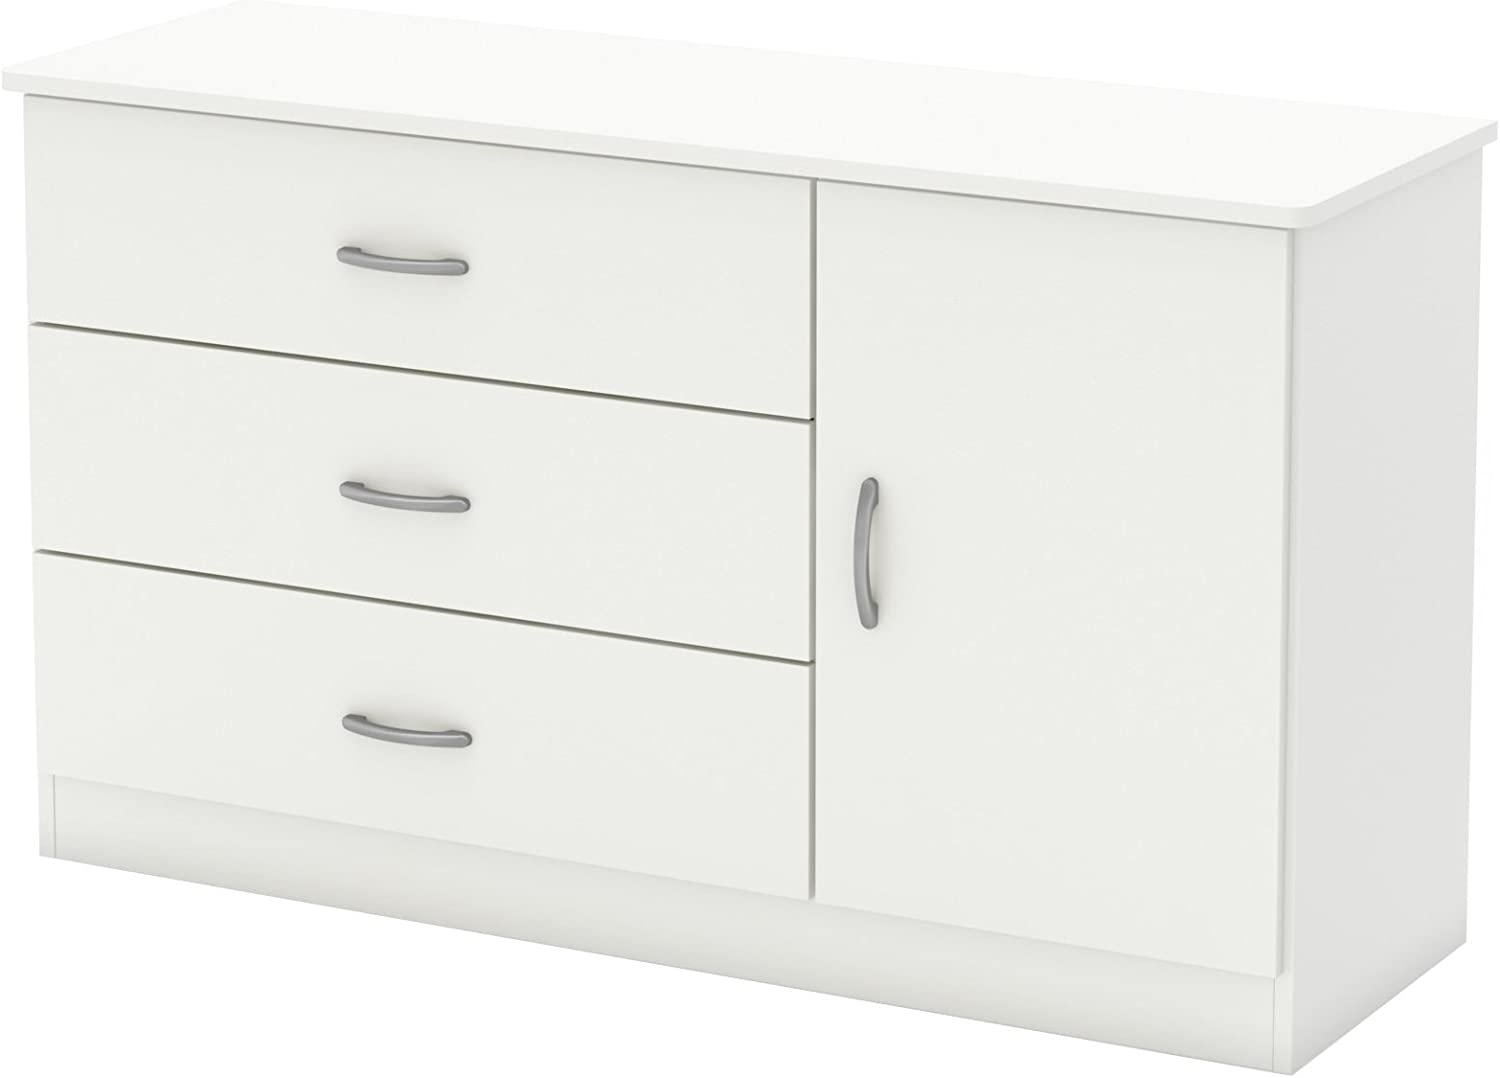 South Shore Libra 3-Drawer Chest Pure Black Black